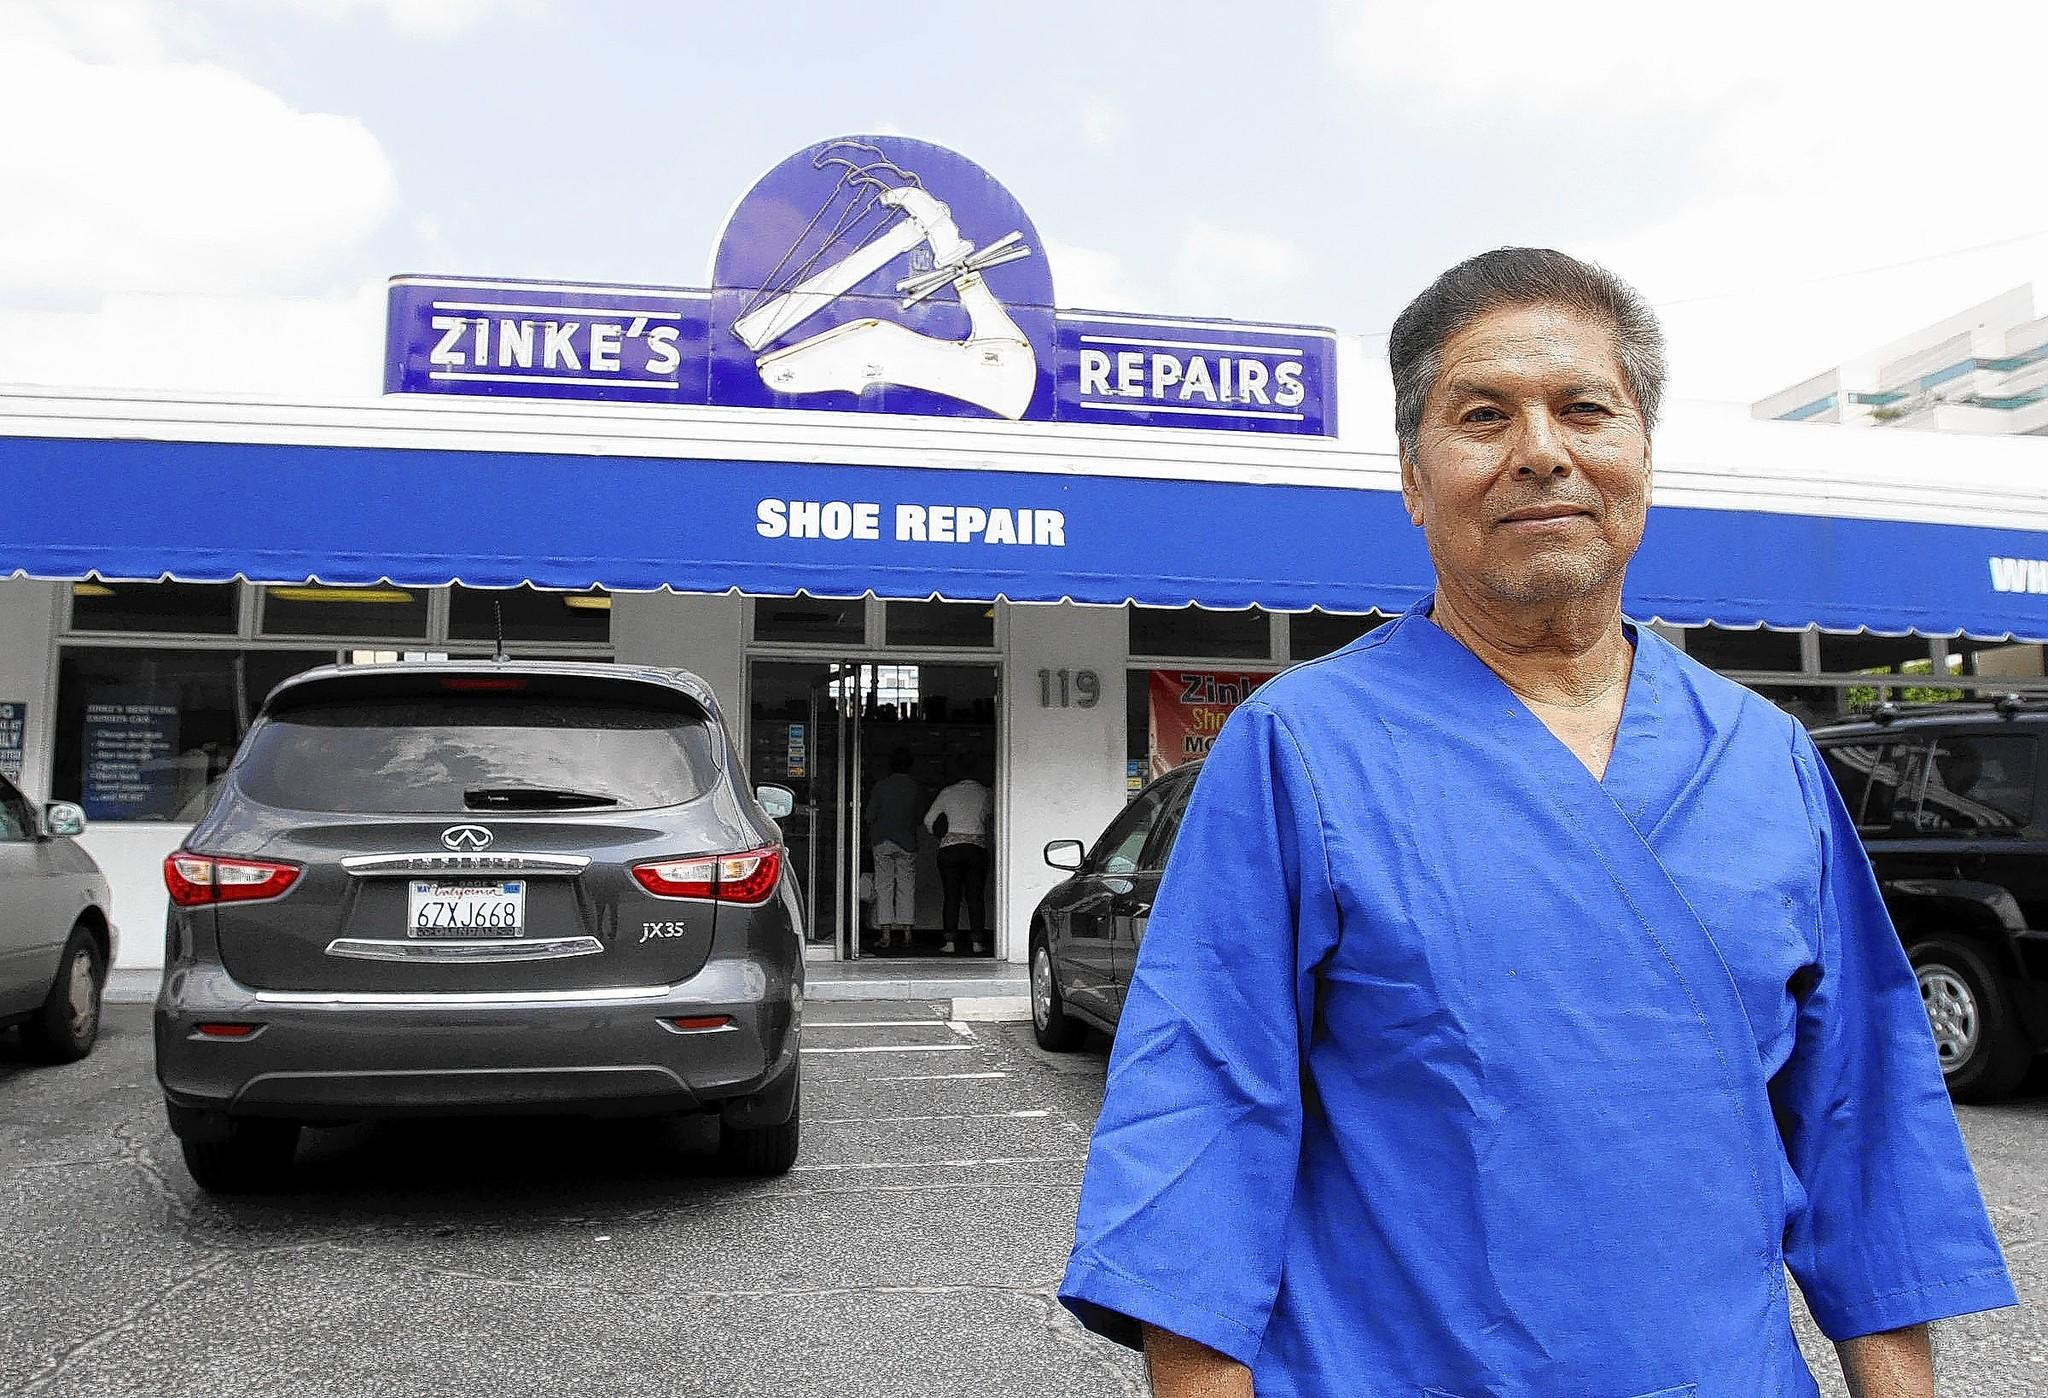 Zinke's Drive-In Shoe Repair owner Mike Ramirez at his store on the 100 block of W. California Ave. in Glendale on Friday, March 21, 2014. Zinke's is moving to Pasadena at the end of the month.